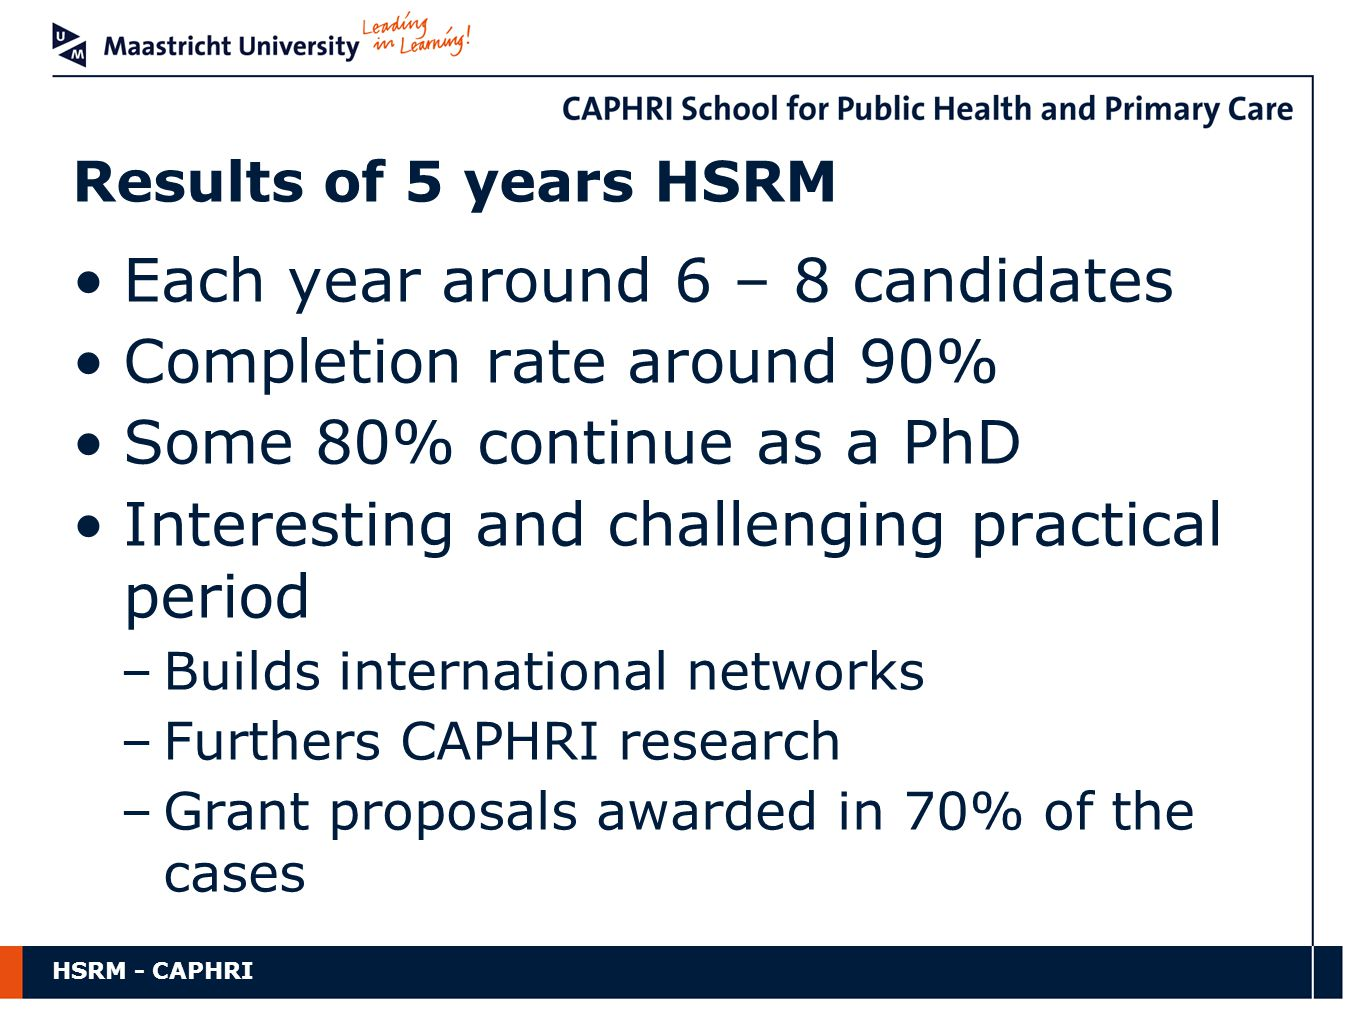 HSRM - CAPHRI Each year around 6 – 8 candidates Completion rate around 90% Some 80% continue as a PhD Interesting and challenging practical period –Builds international networks –Furthers CAPHRI research –Grant proposals awarded in 70% of the cases Results of 5 years HSRM